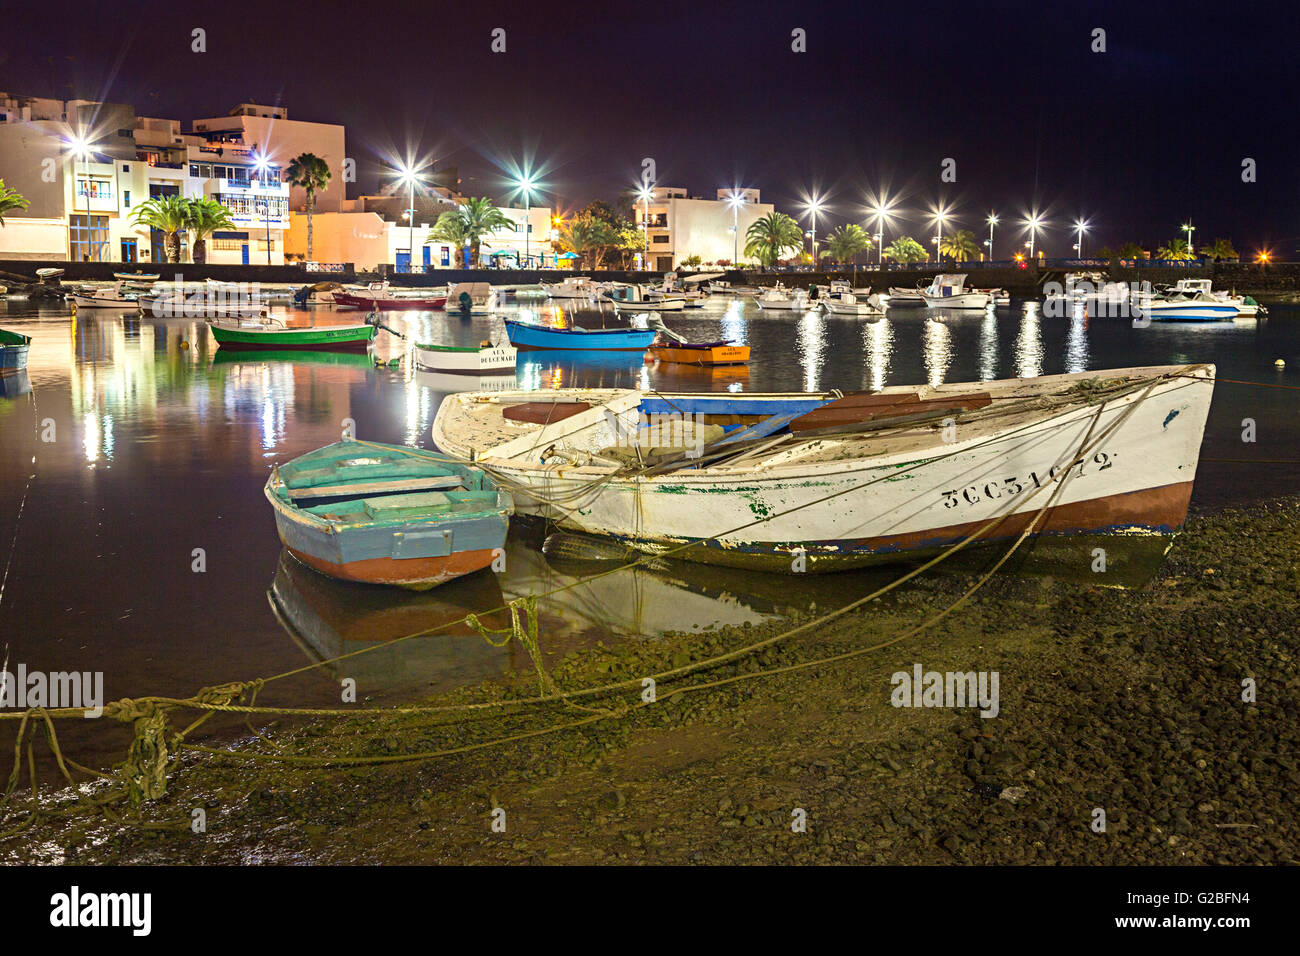 Boats moored in harbour at dusk, Arrecife, Lanzarote, Canary Islands, Spain - Stock Image